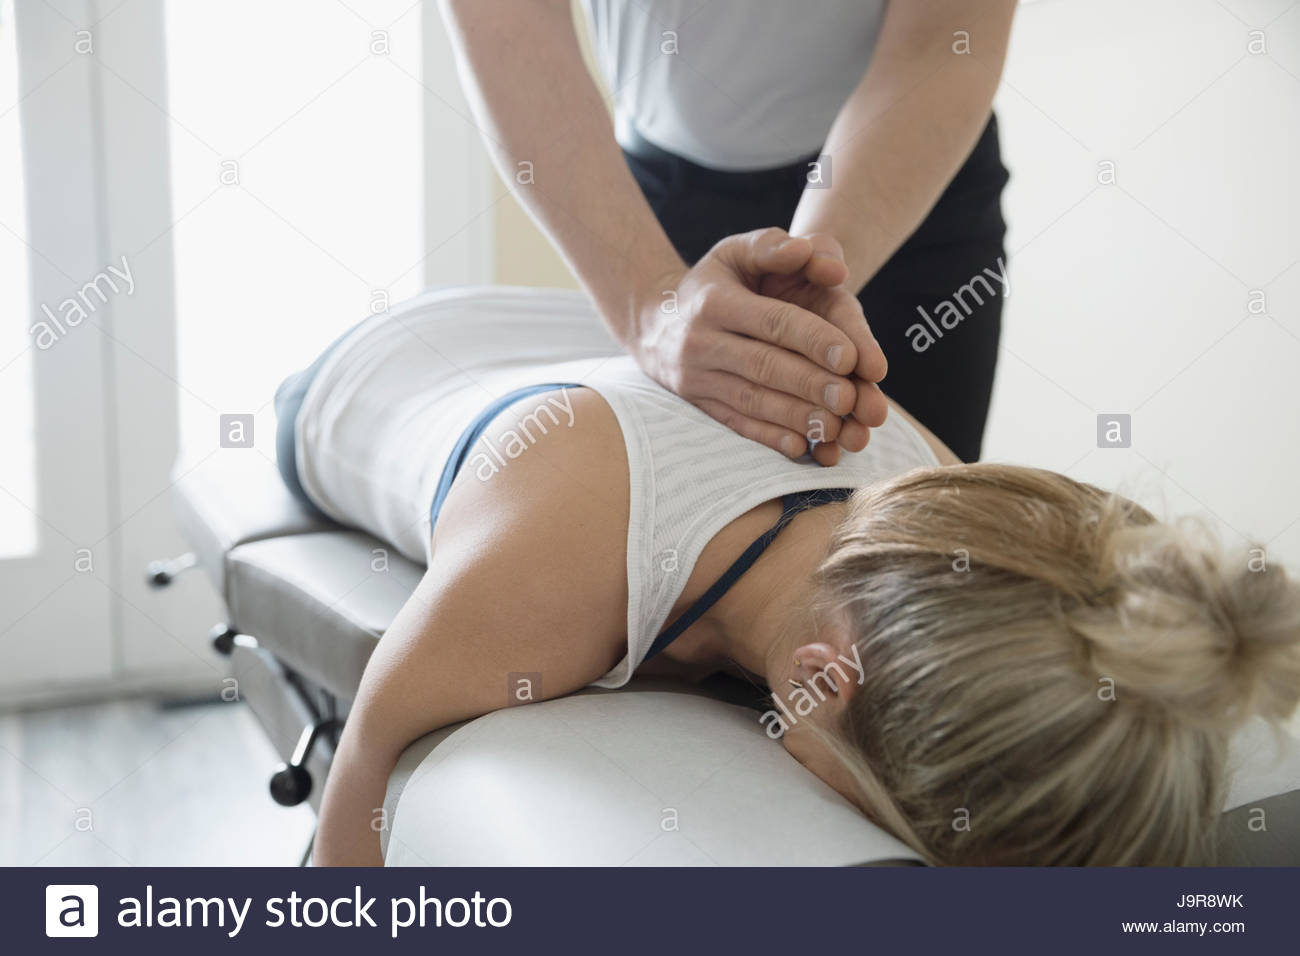 Male physiotherapist massaging back of woman on clinic examination table - Stock Image